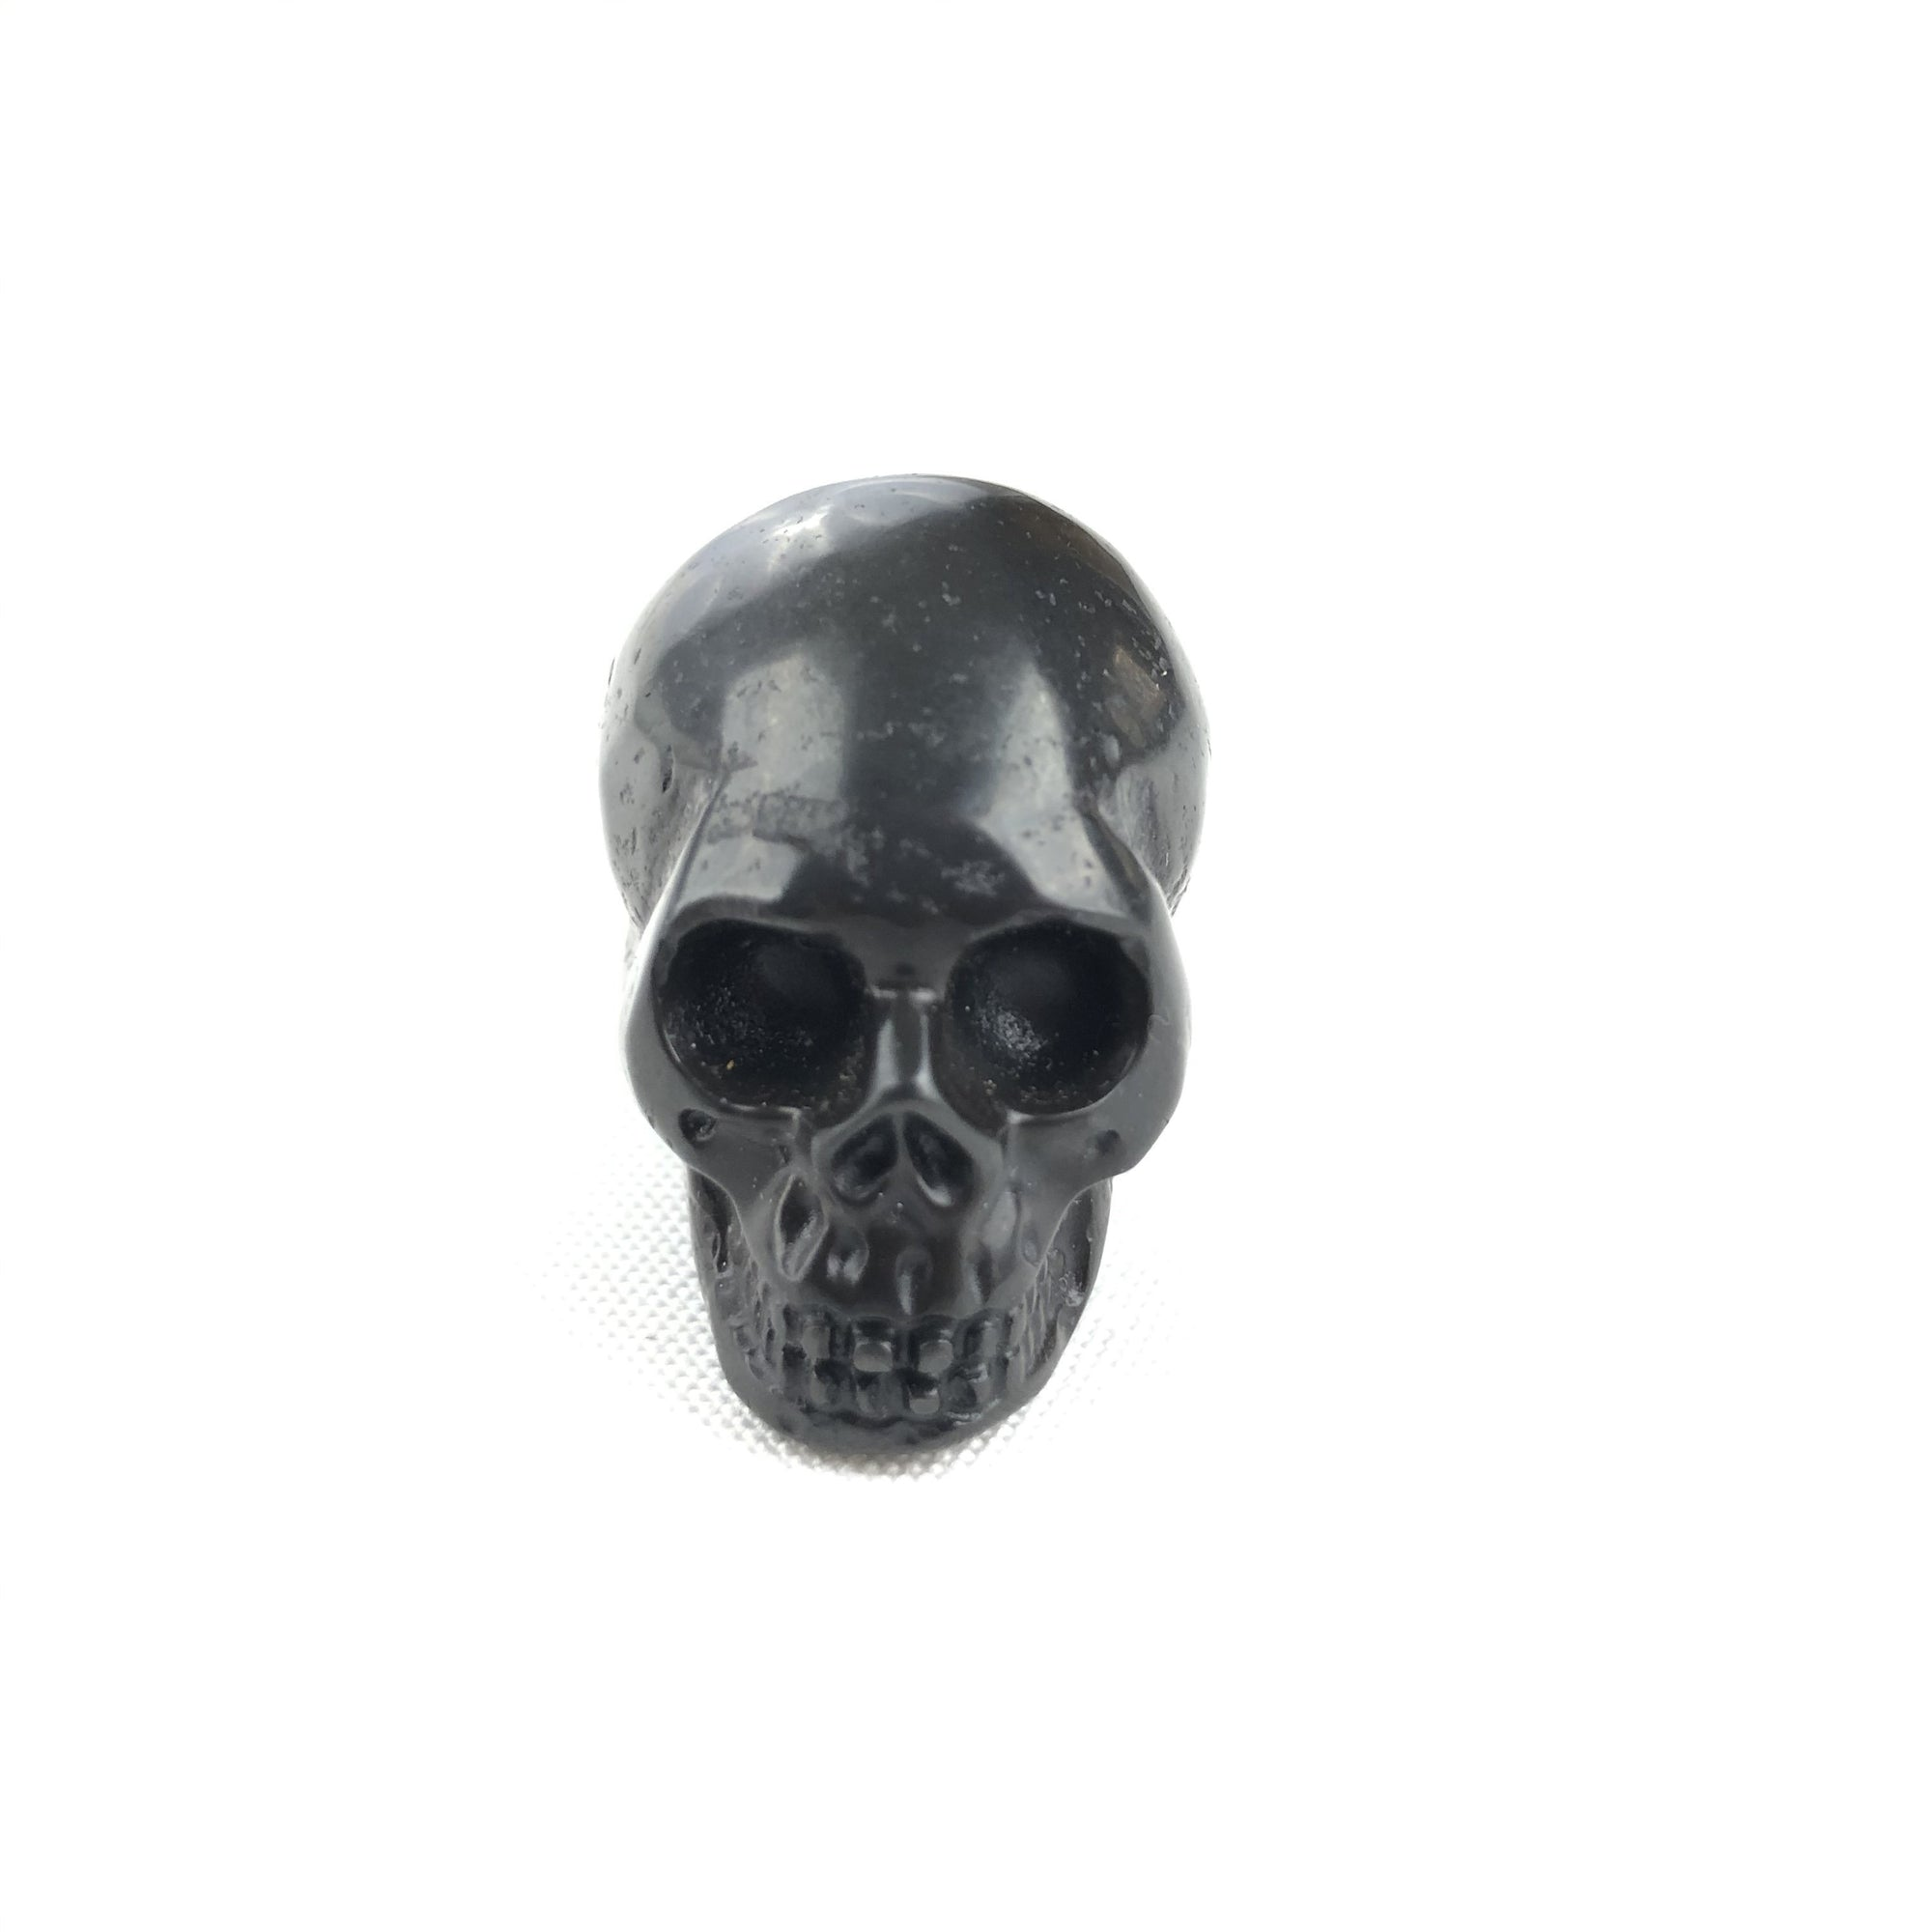 BUTTON DOWN CARVED STONE SMALL SKULL - HEMATITE